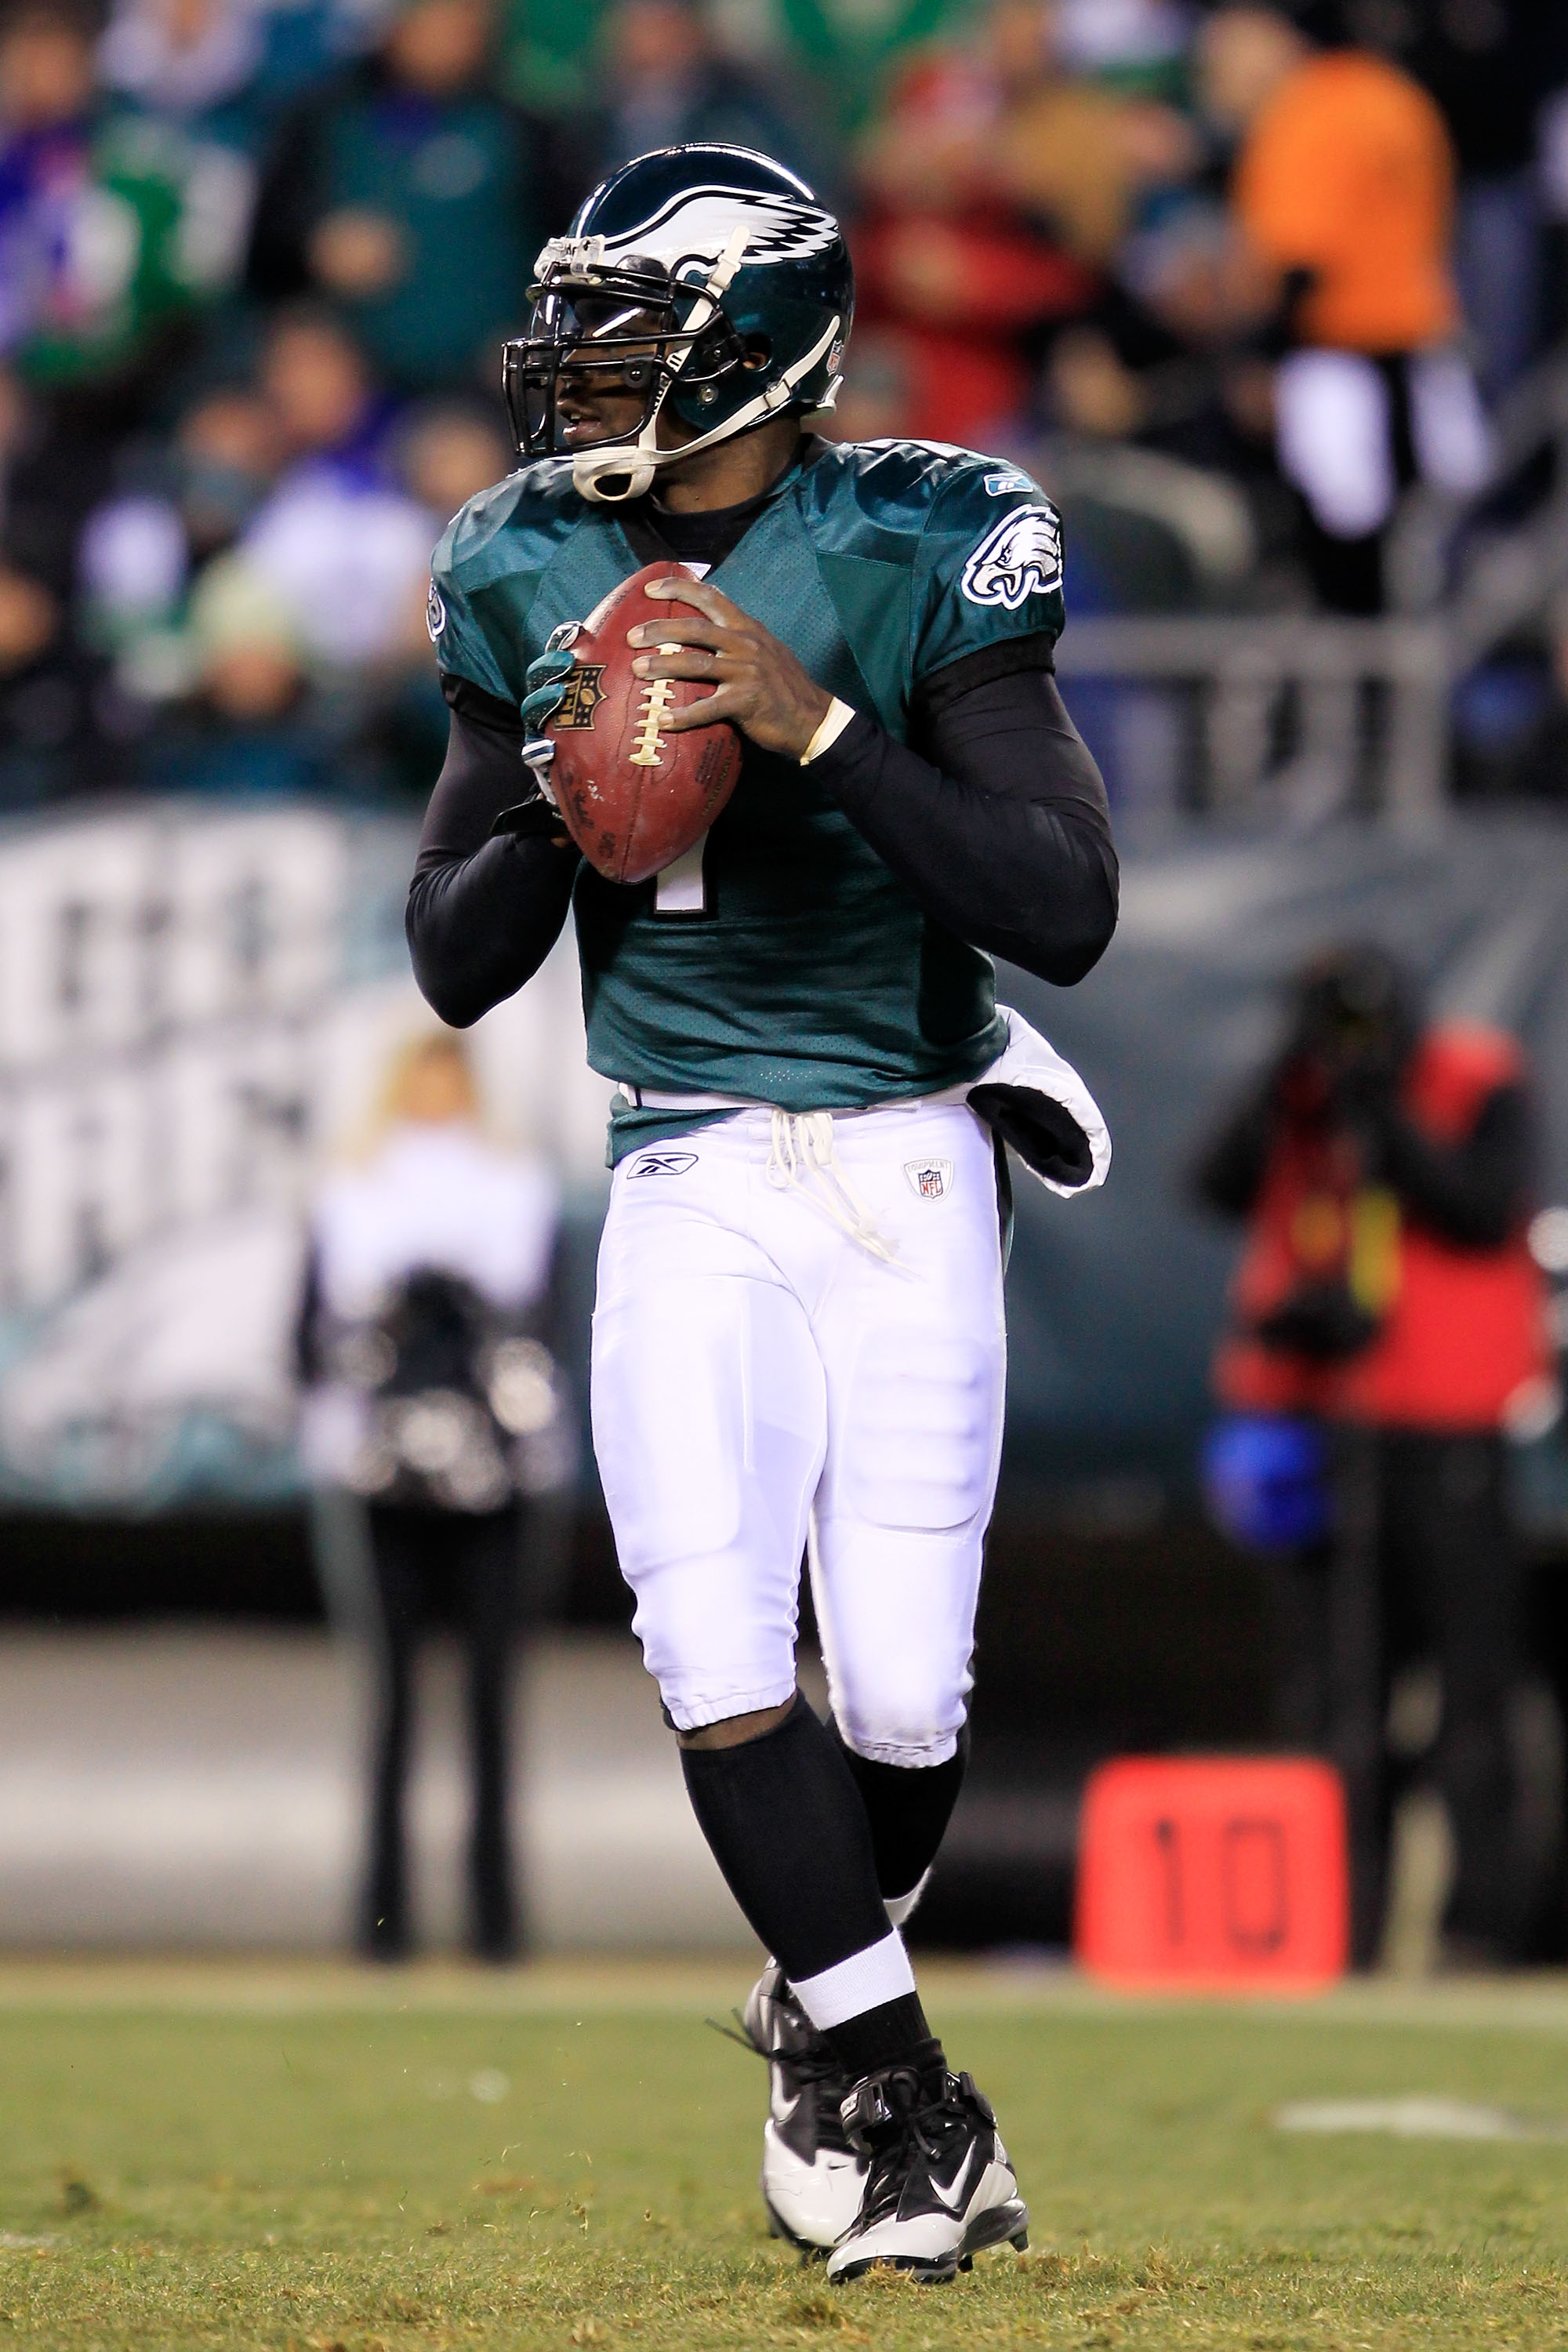 PHILADELPHIA, PA - JANUARY 09:  Michael Vick #7 of the Philadelphia Eagles drops back against the Green Bay Packers during the 2011 NFC wild card playoff game at Lincoln Financial Field on January 9, 2011 in Philadelphia, Pennsylvania.  (Photo by Chris Tr